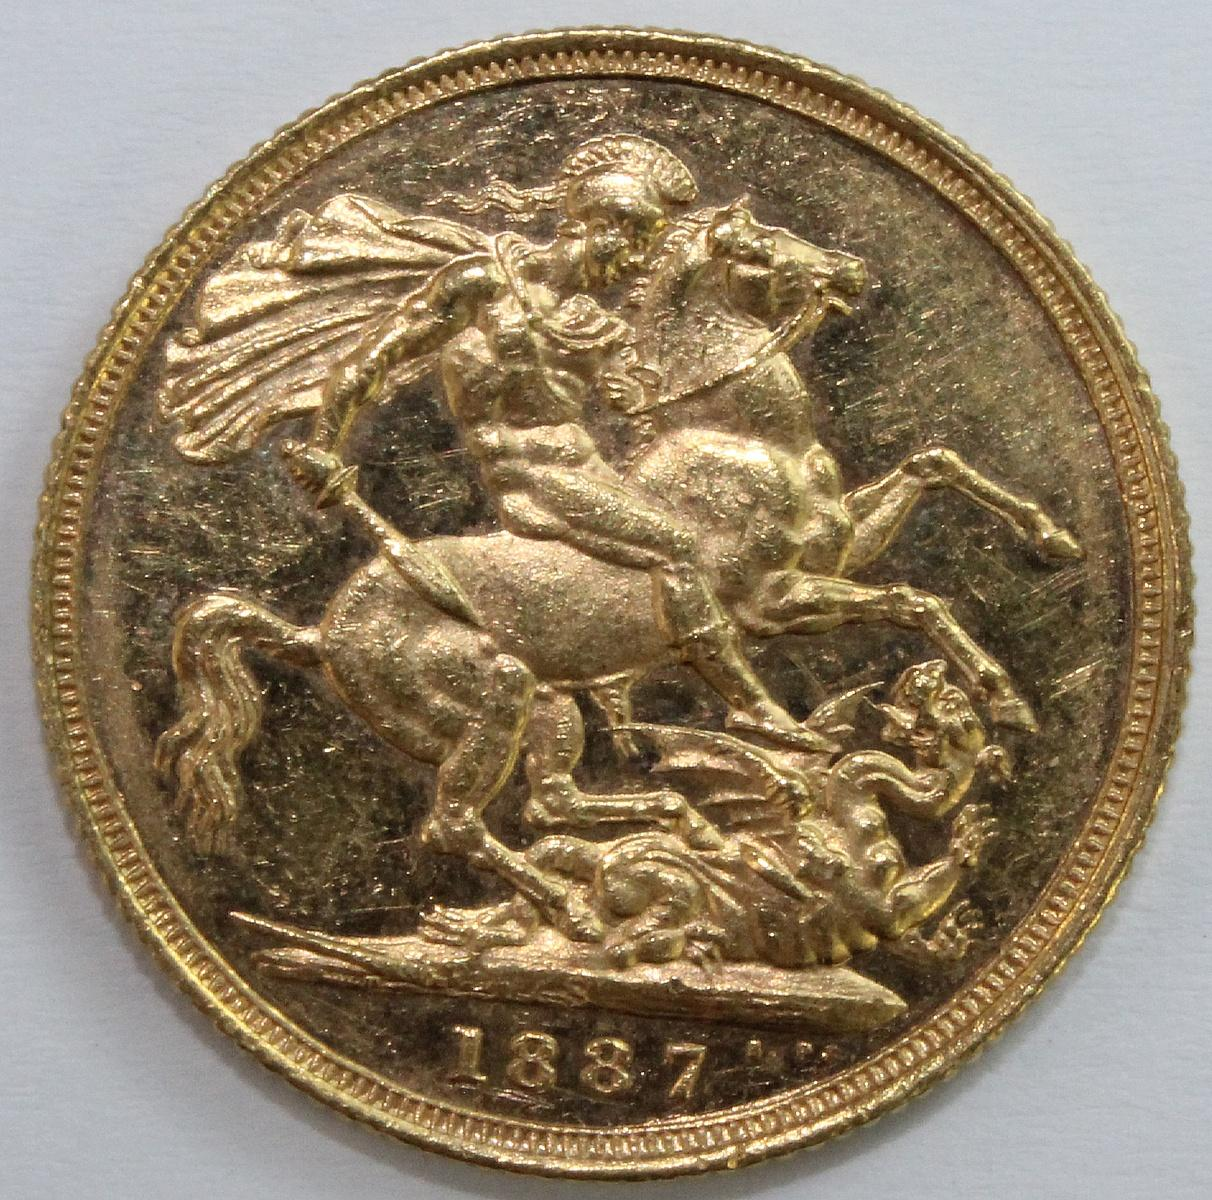 Australia. 1887 S 'Jubilee' Gold (0.916) Sovereign, about Uncirculated